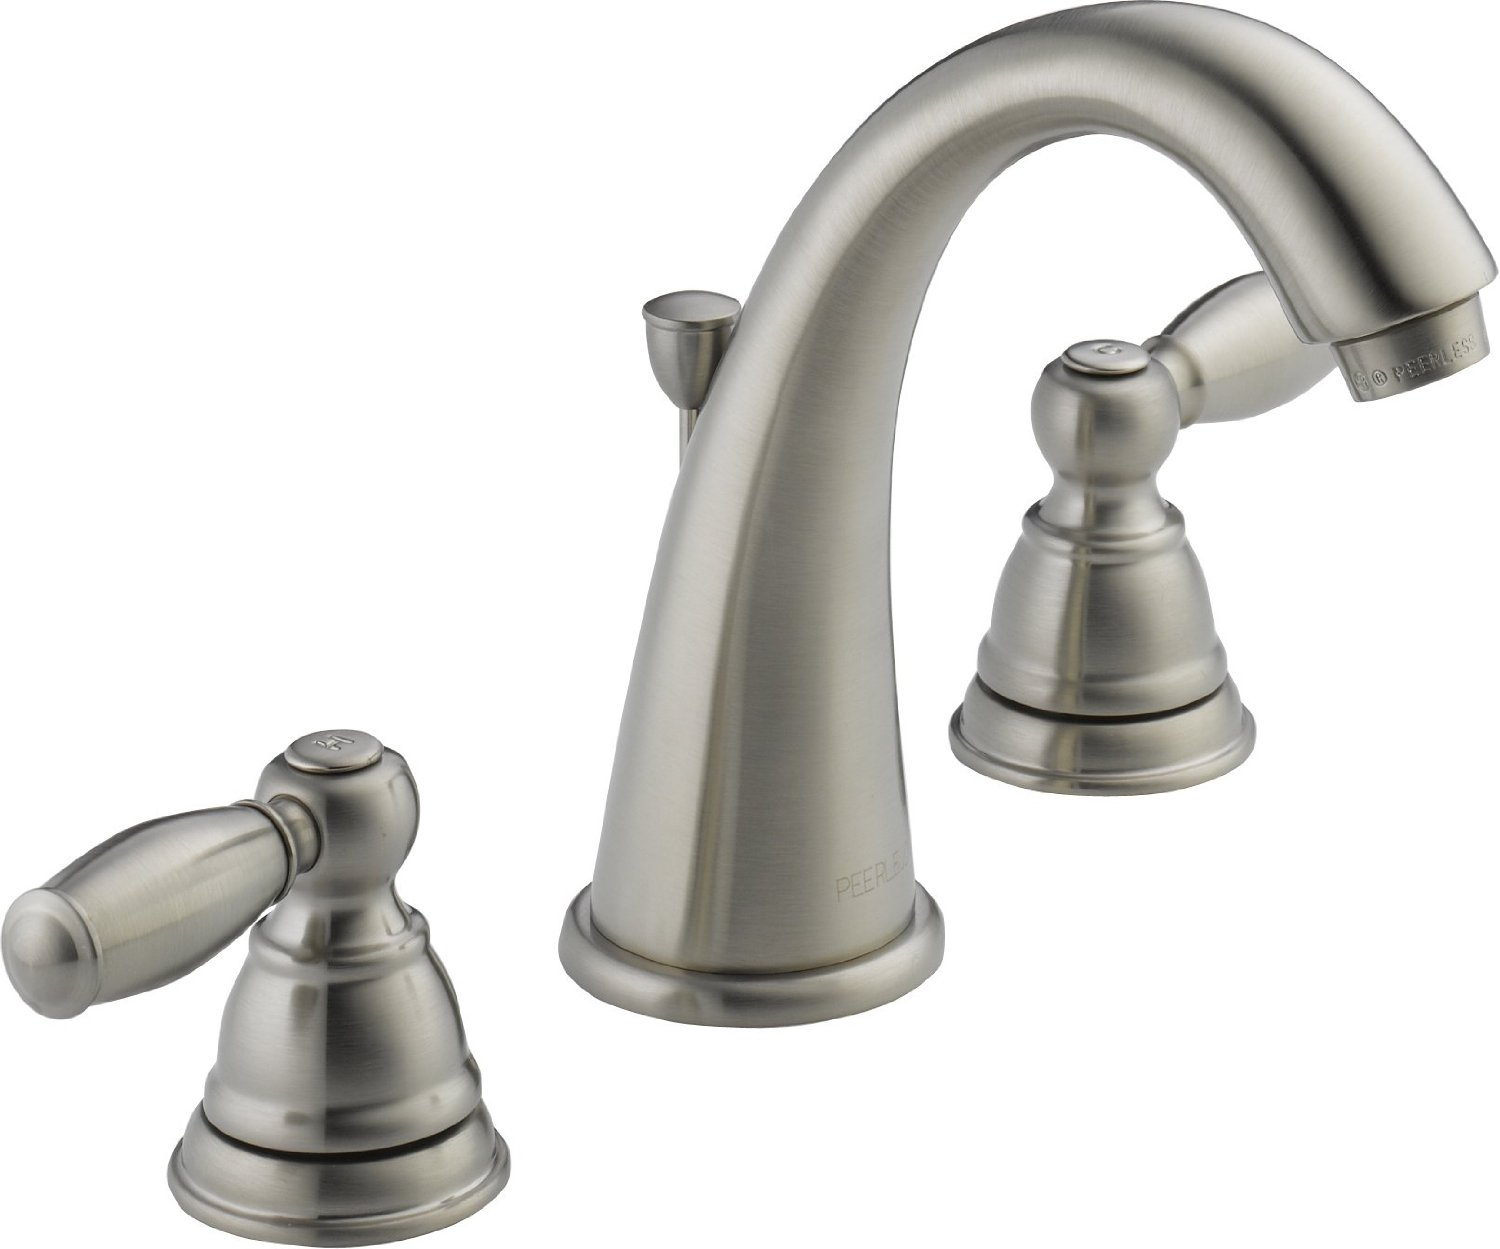 Quesnel Dual Handle Bathroom Sink Faucet